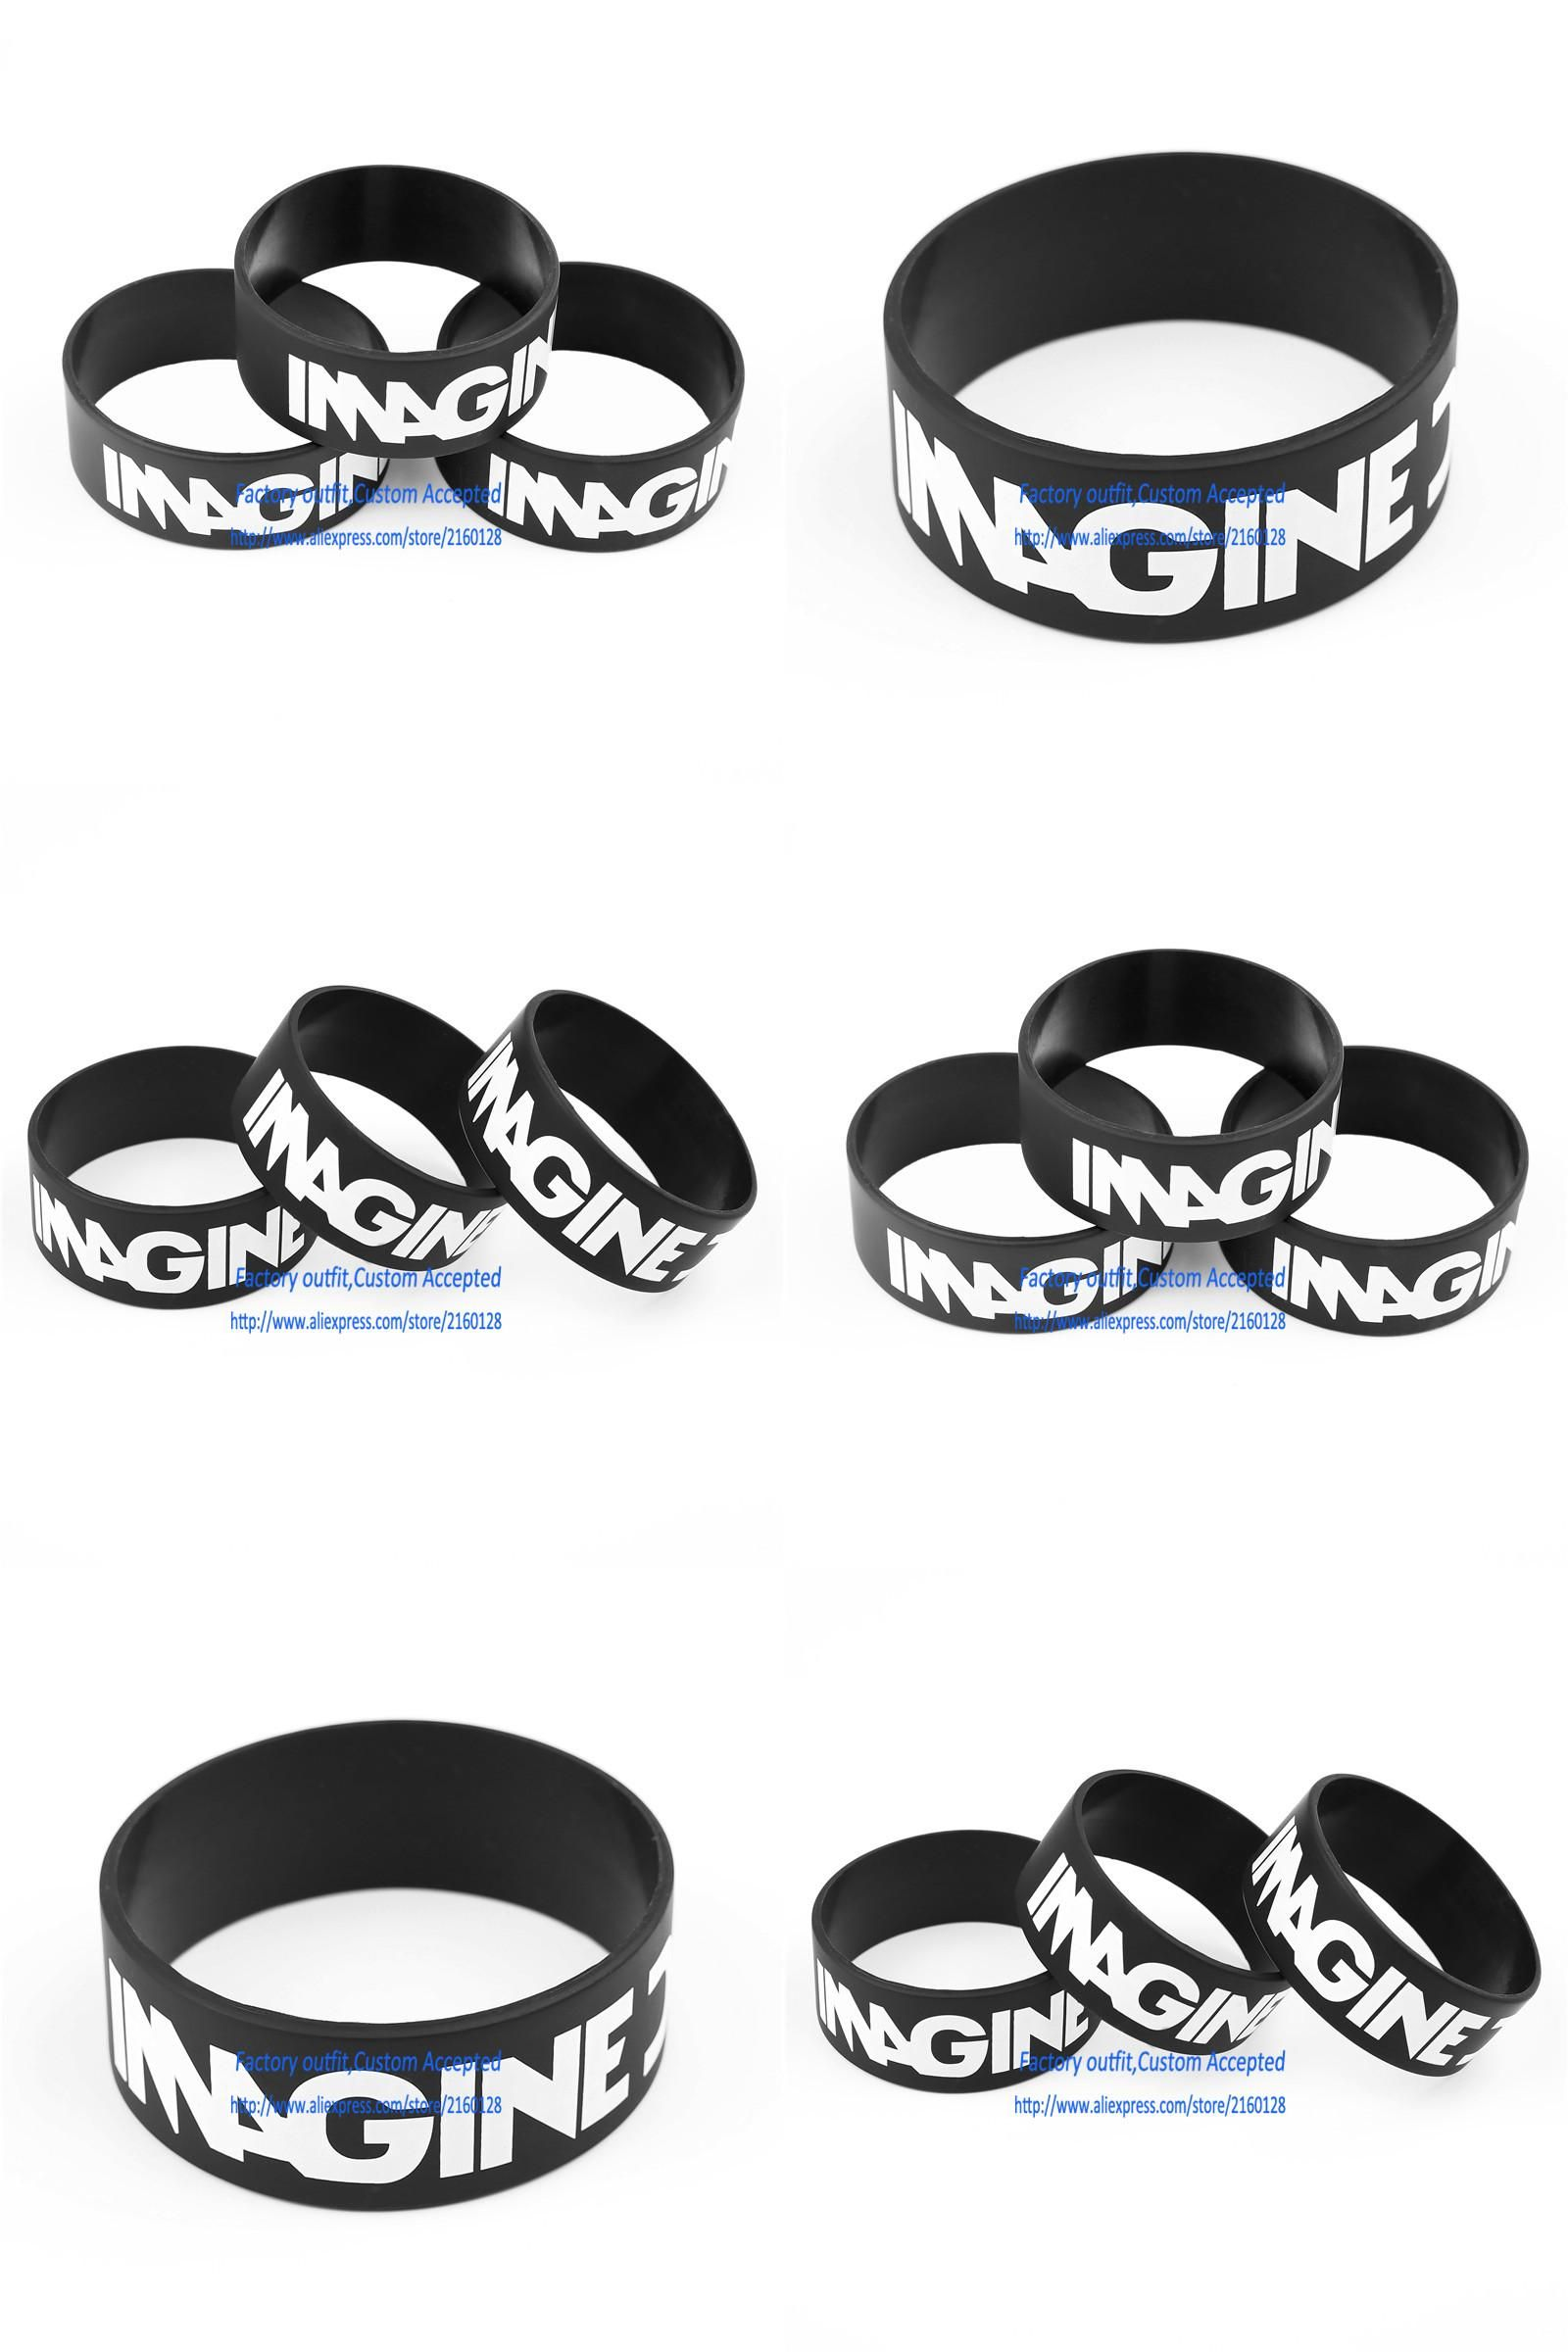 Visit to buy image dragon silicone wristband bracelets fans gift